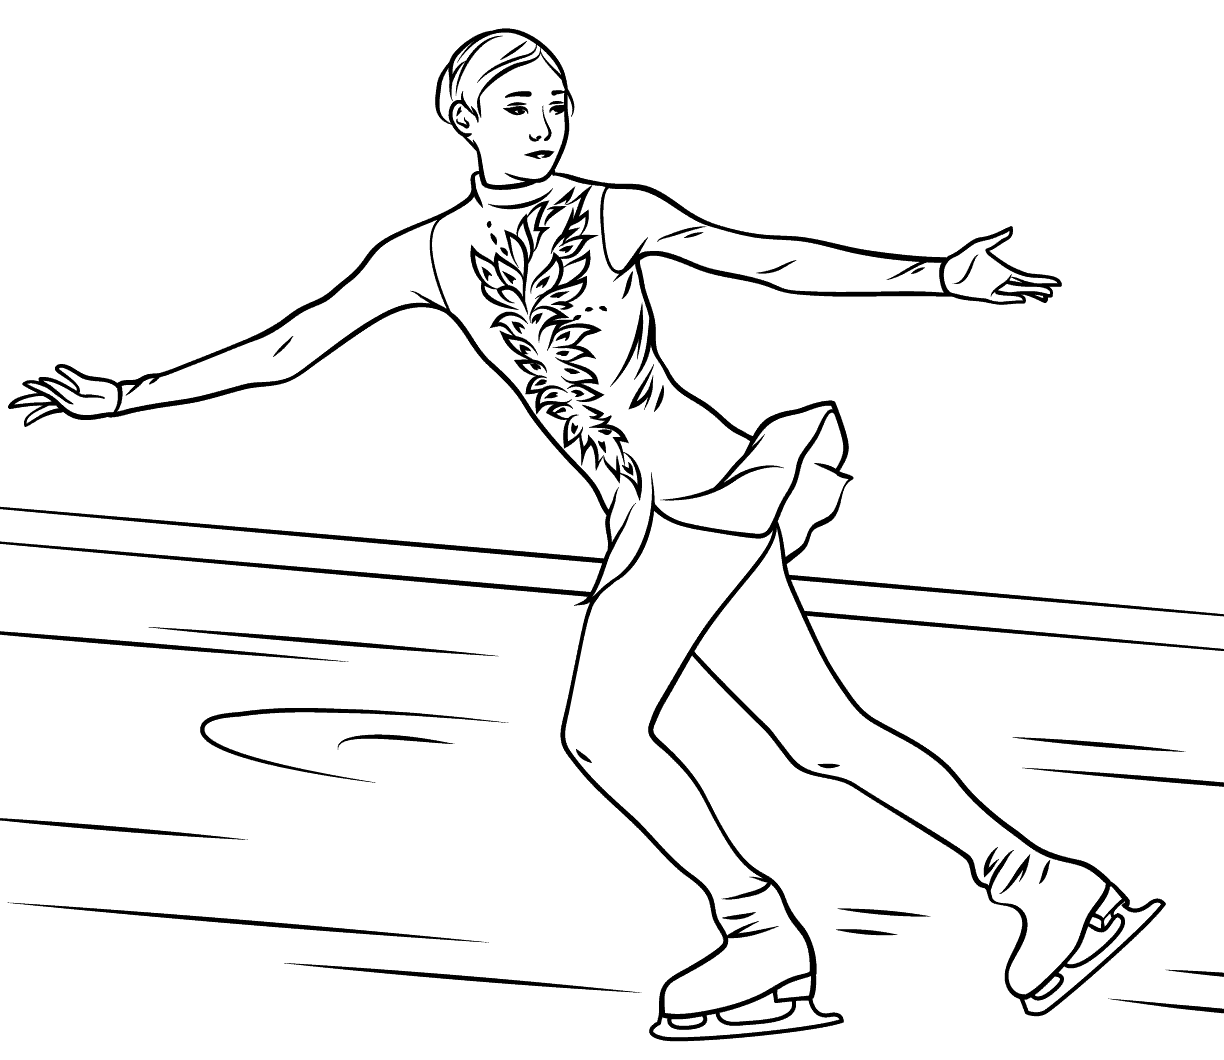 1224x1060 Printable Coloring Pages Zentangle Figure Free Skating Kids Skater